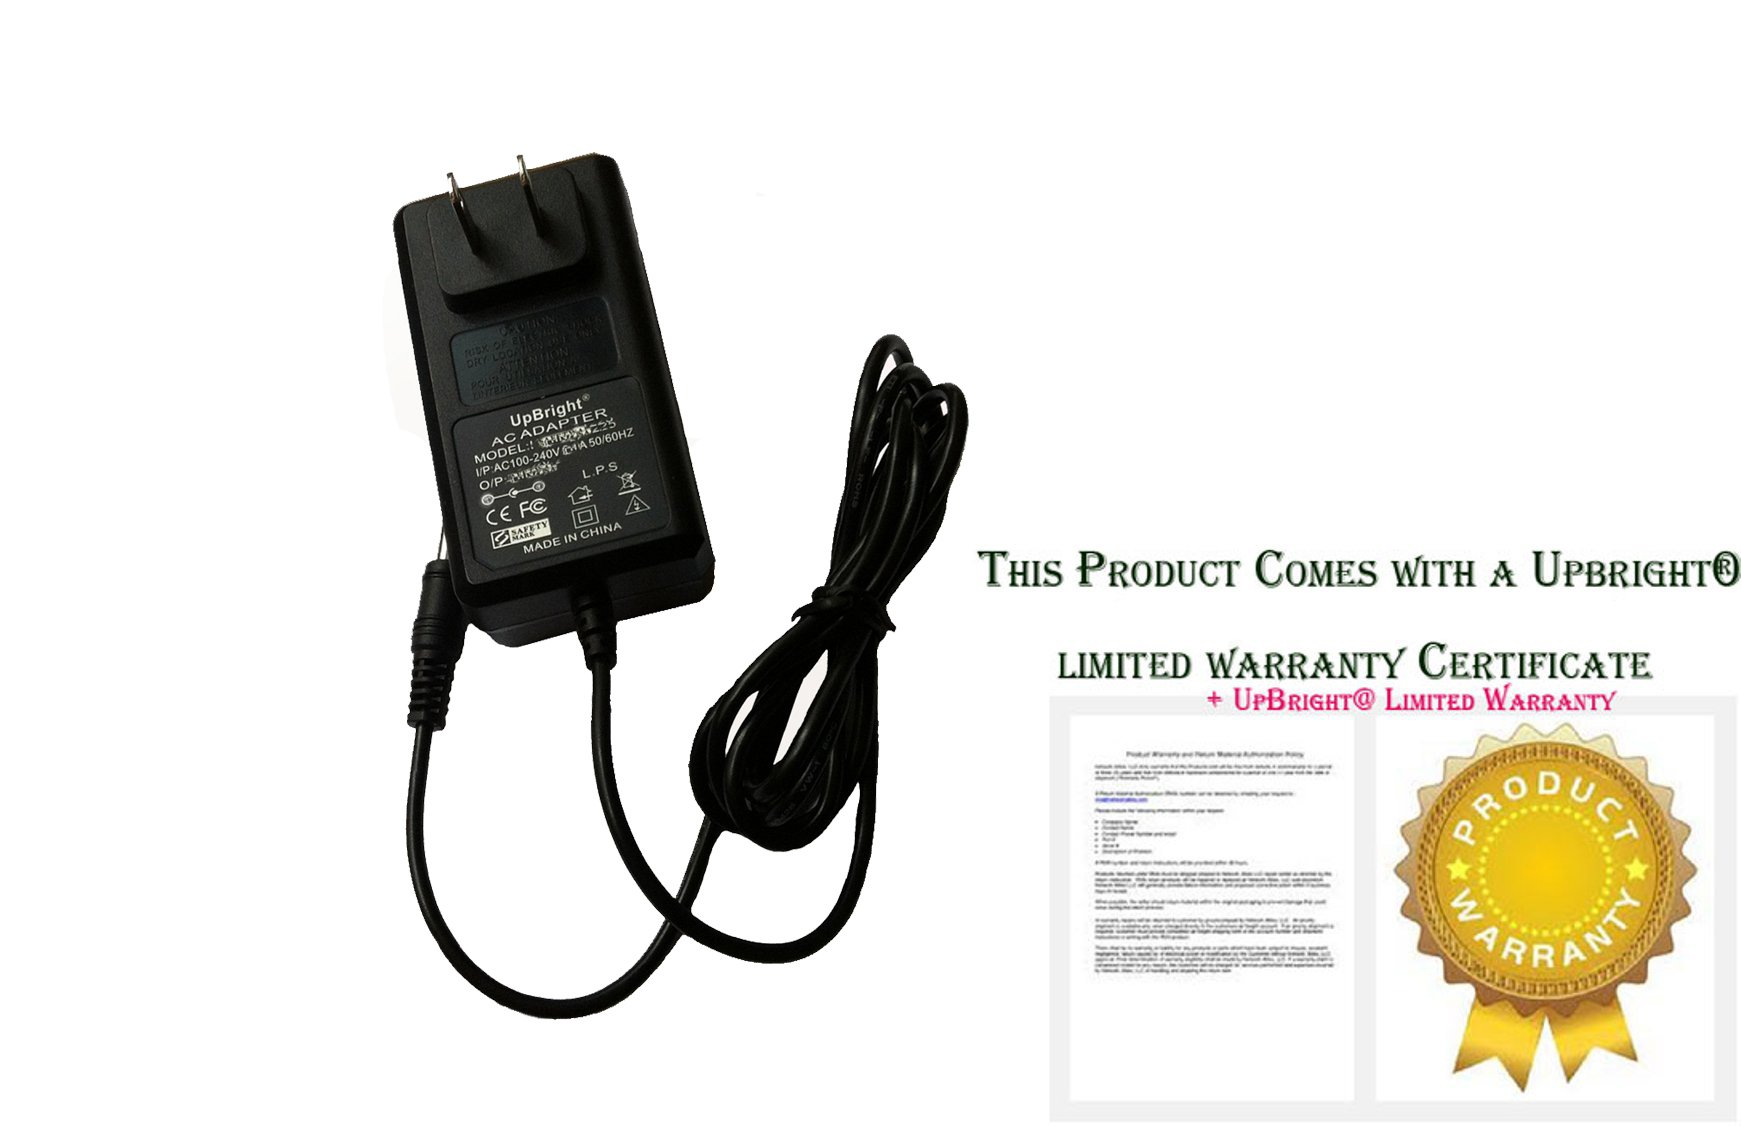 UpBright NEW AC / DC Adapter For Axis Communications 213 NTSC P/N: 0220-004 213R PTZ Network Security Surveillance Camera Power Supply Cord Cable PS Wall Home Charger Mains PSU